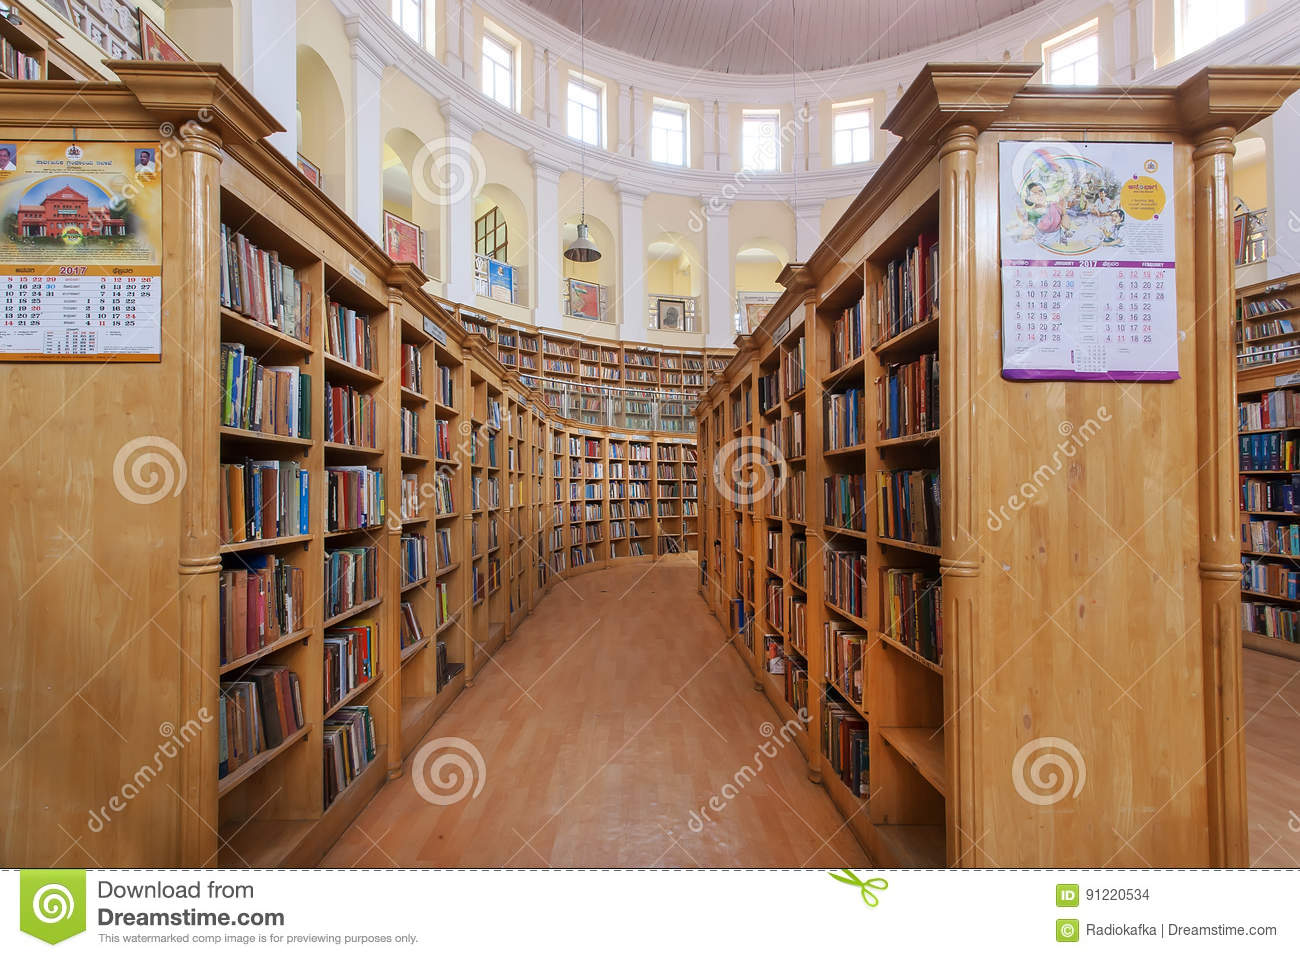 Many Books Stack On Shelves Of The Karnataka State Central Library